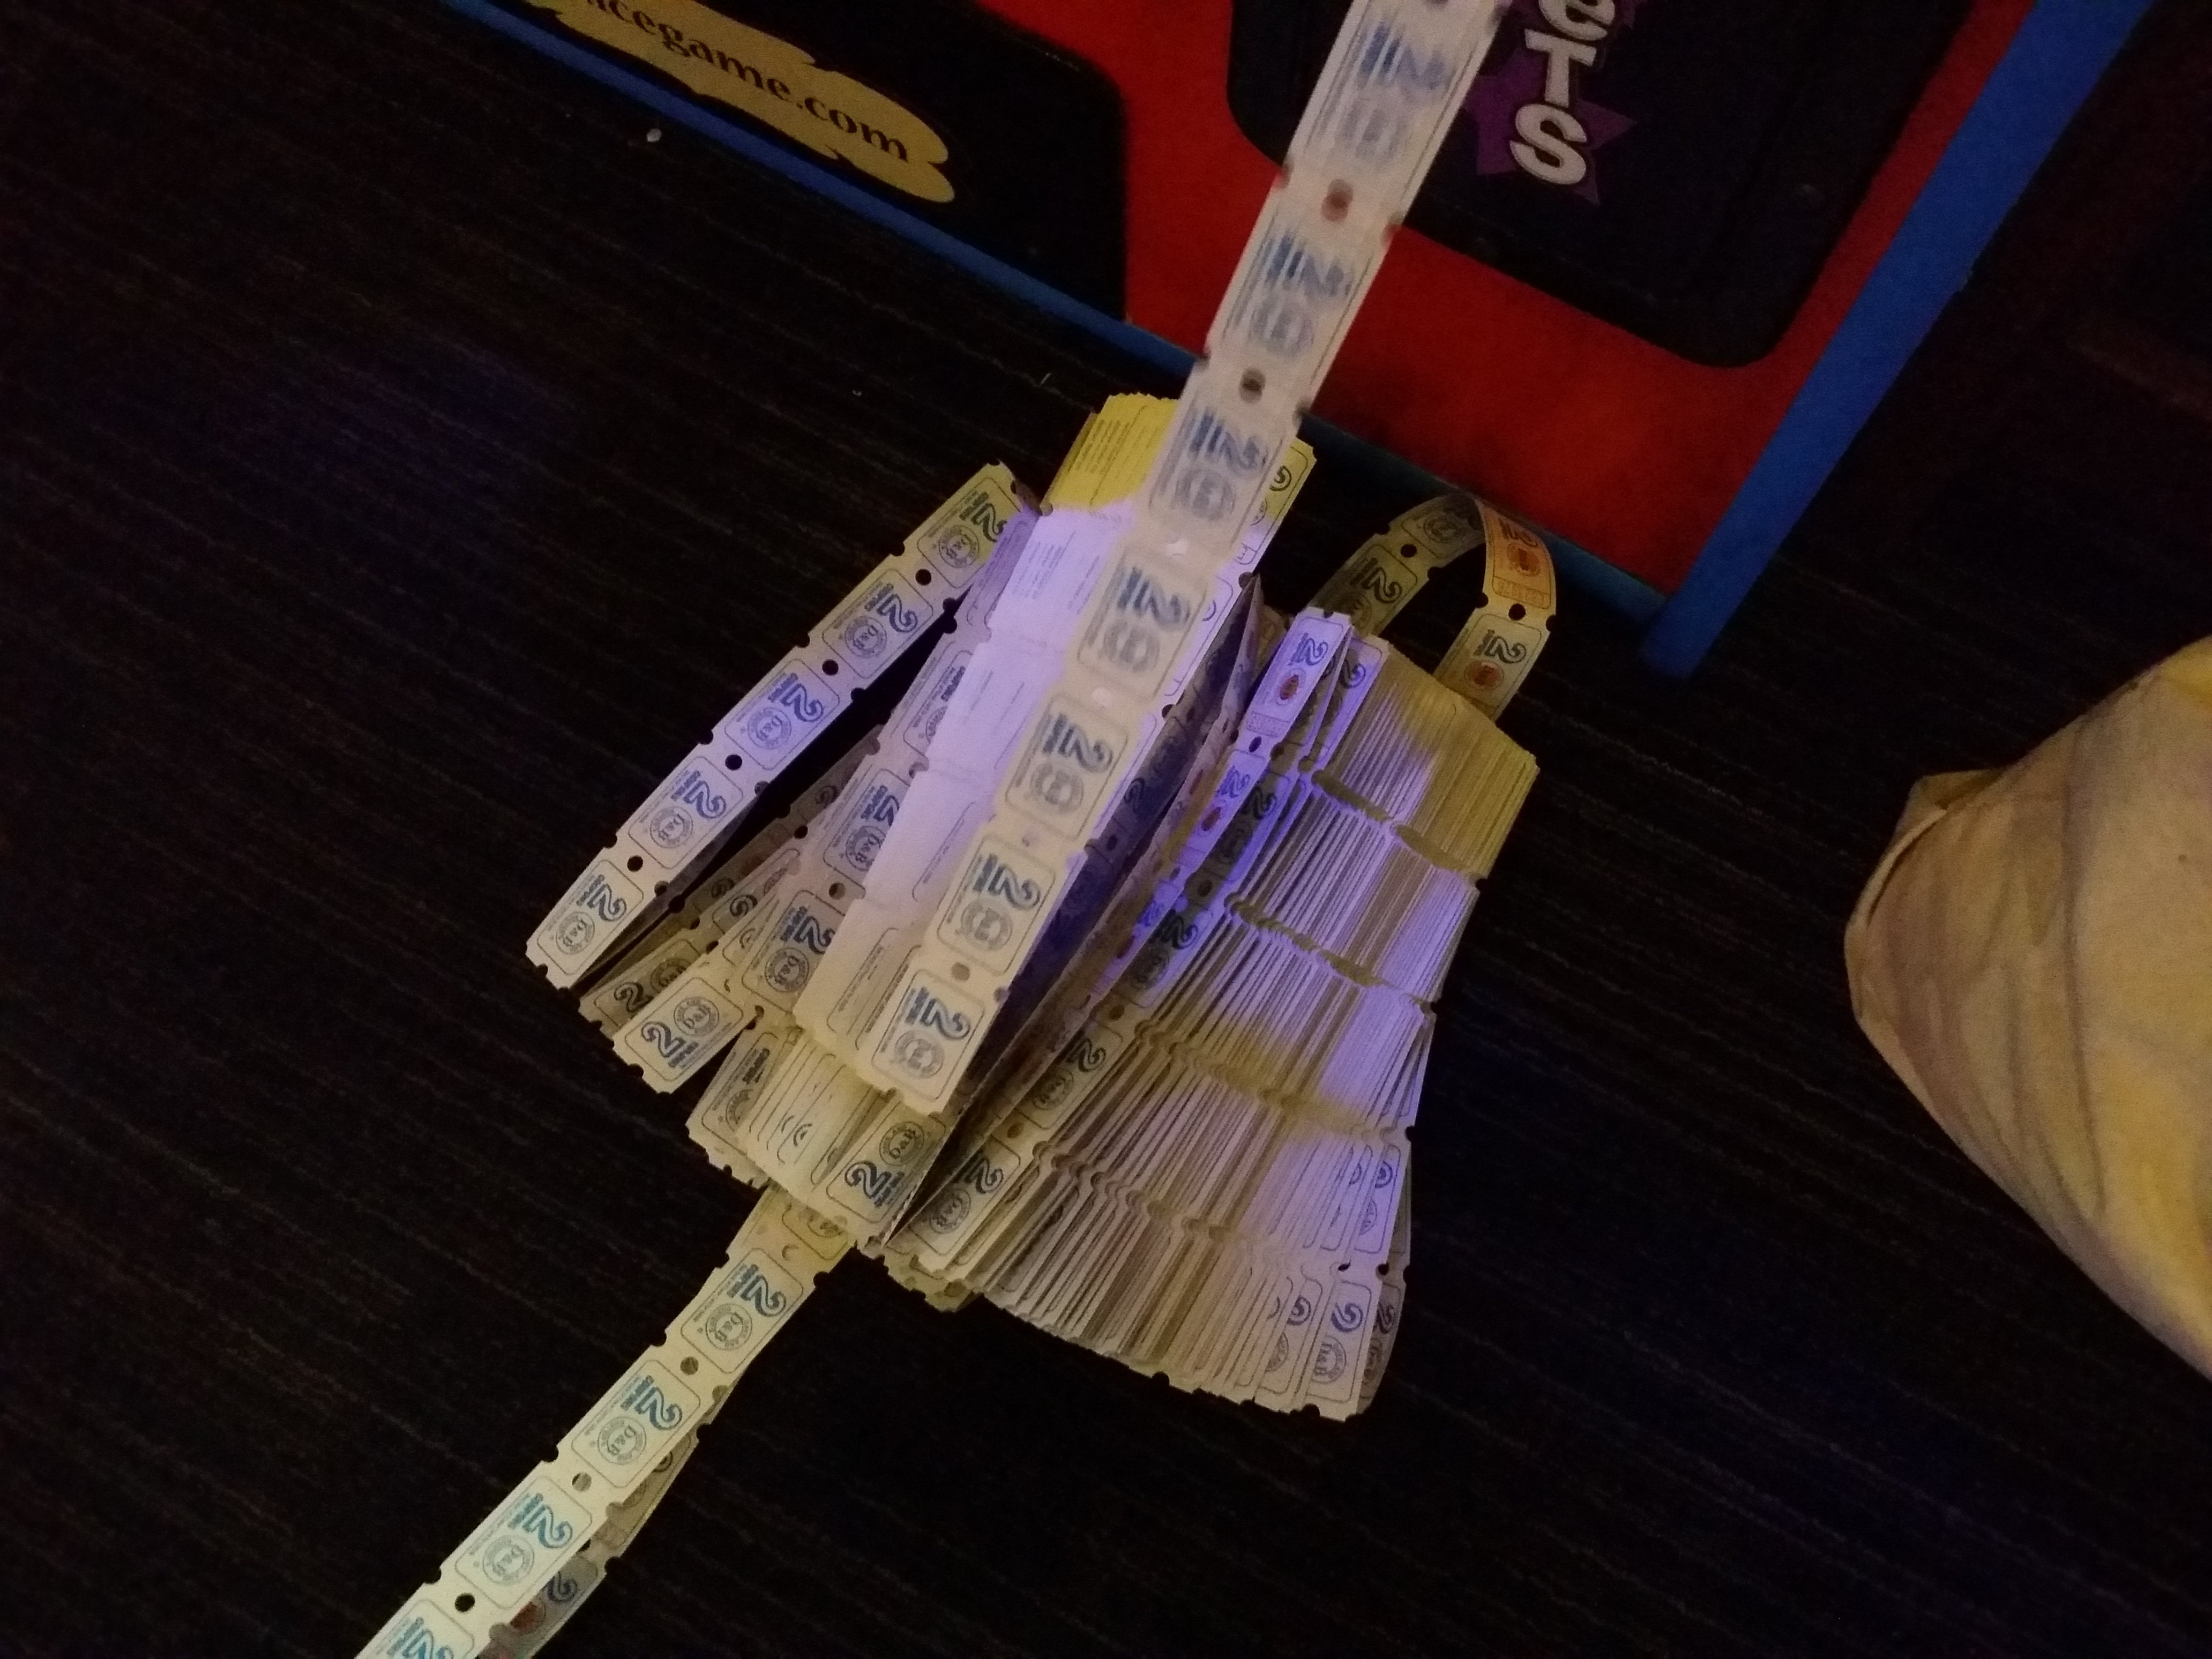 Dave and busters printable coupons january 2013 -  Dave And Busters Orlando Tickets Lots More Tickets